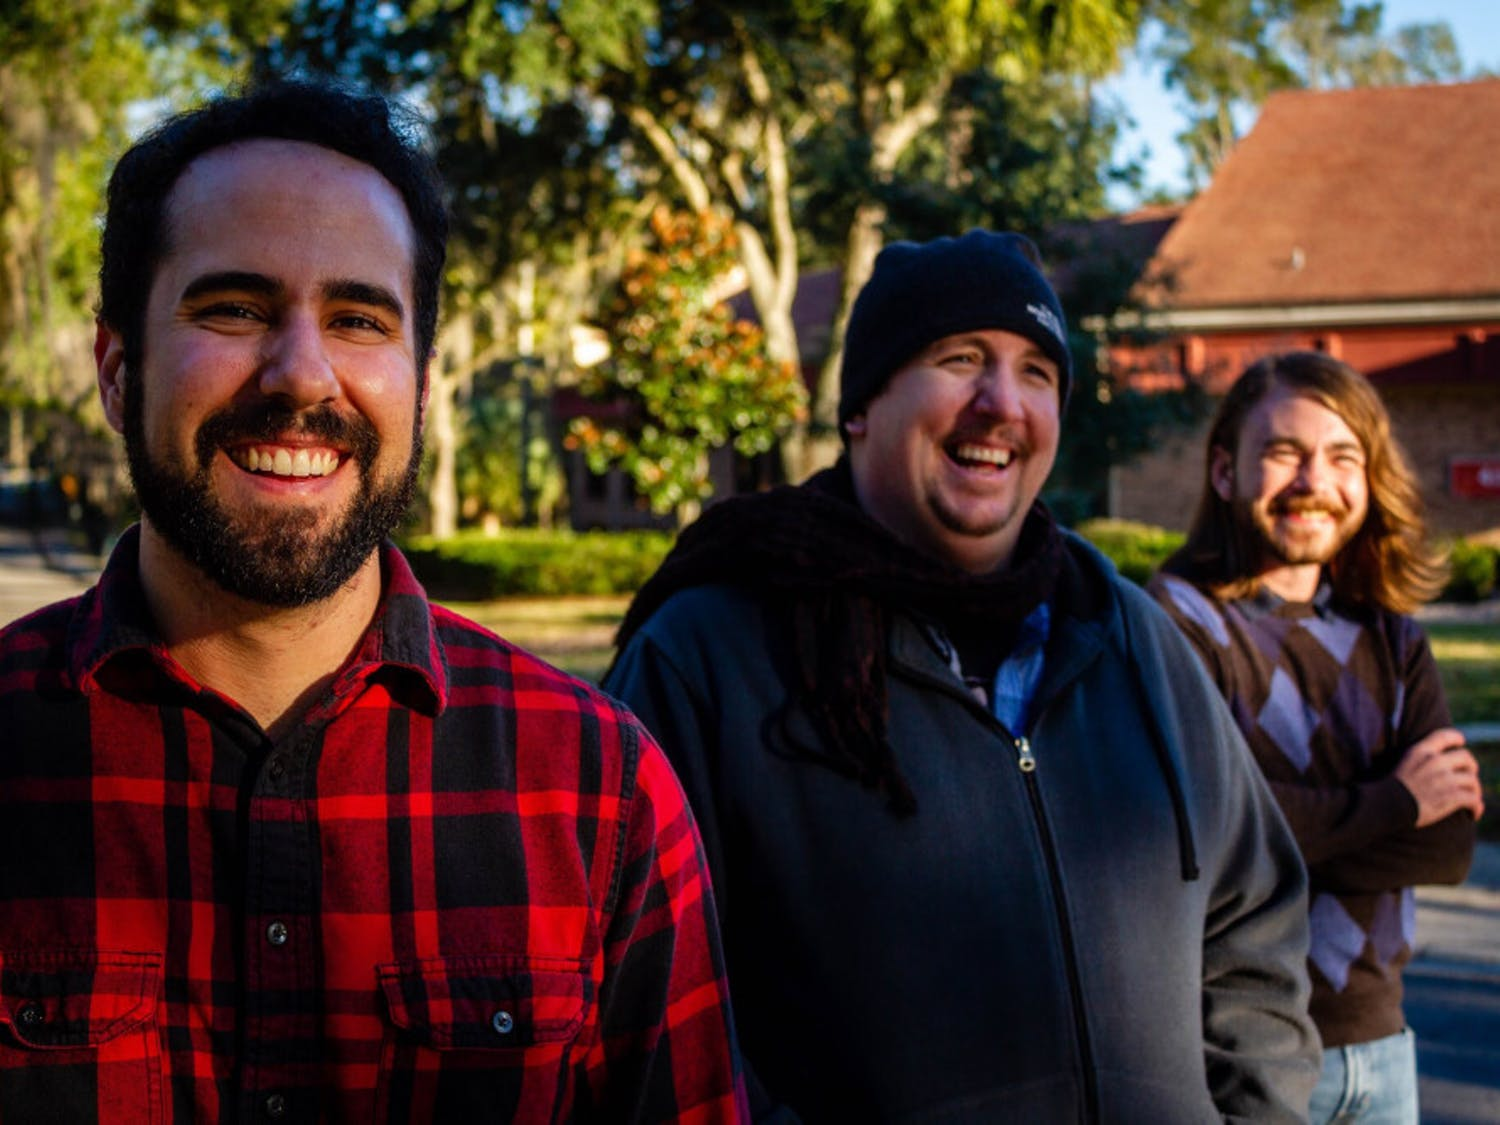 Mike Llerena & The Nerve is a Gainesville rock band preparing for their upcoming tour across Florida and Georgia.